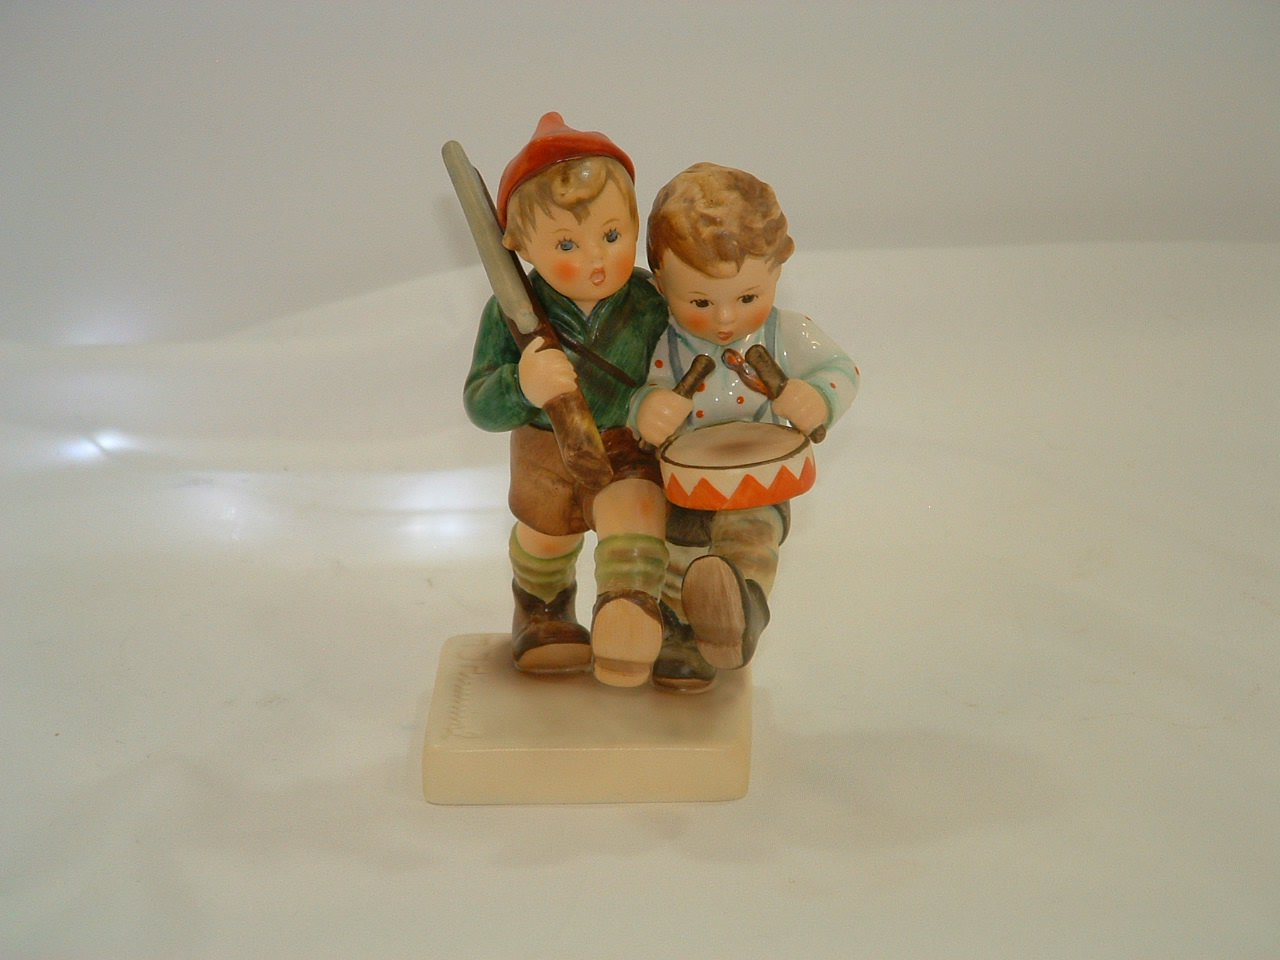 Vintage Hummel Goebel Germany Volunteers Figurine Desert Storm/Desert Shield